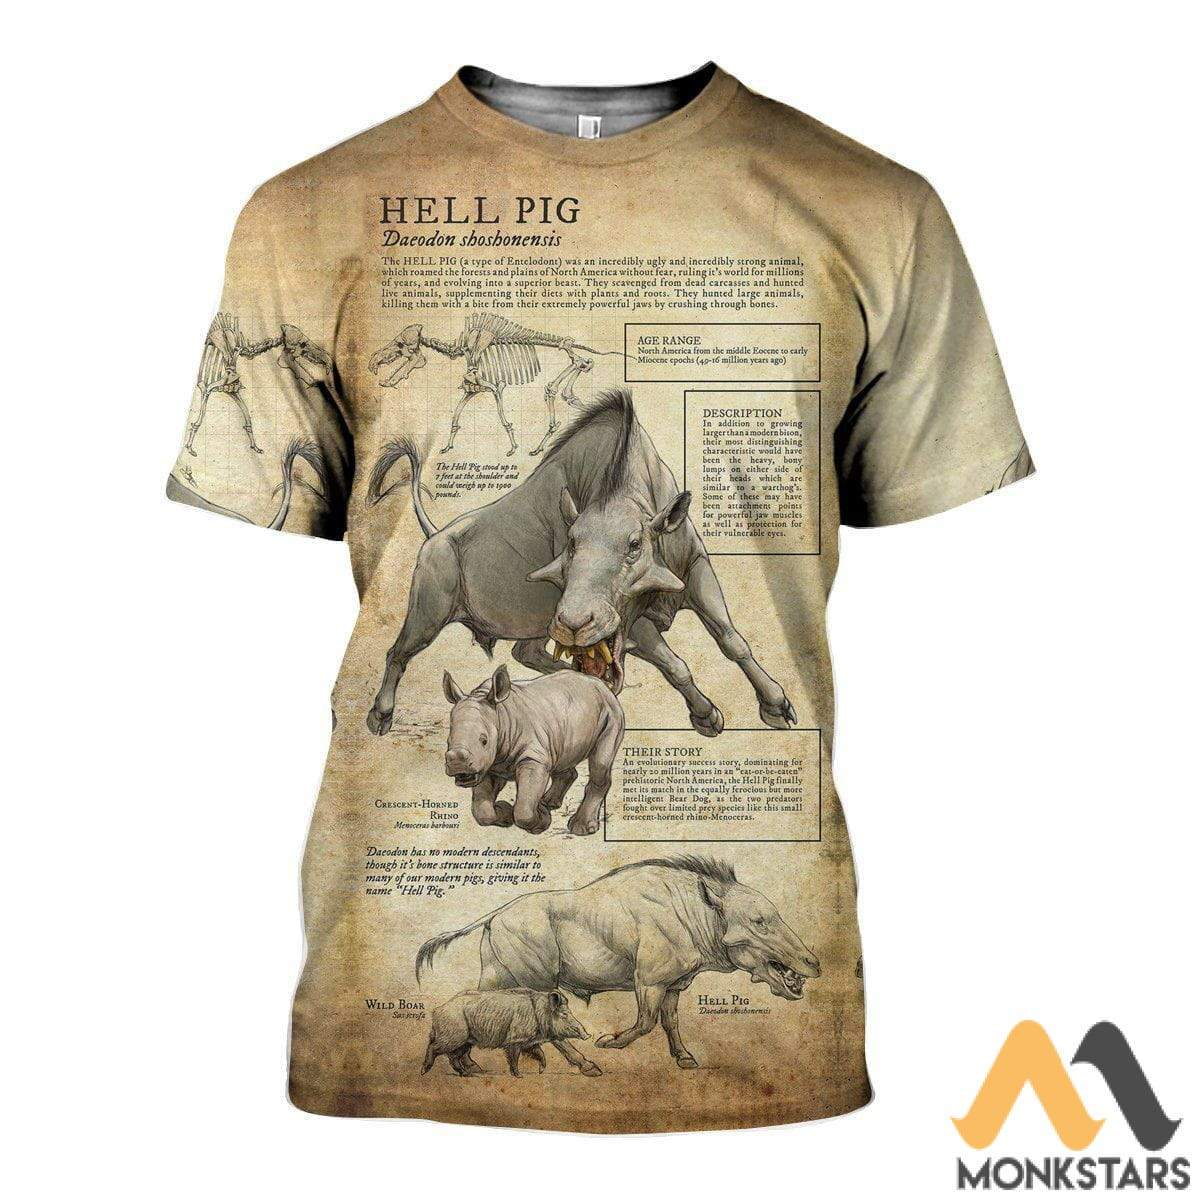 55f465c0abe2 3D All Over Printed Hell Pig Shirts And Shorts Saal110904 T-Shirt   S  Clothes